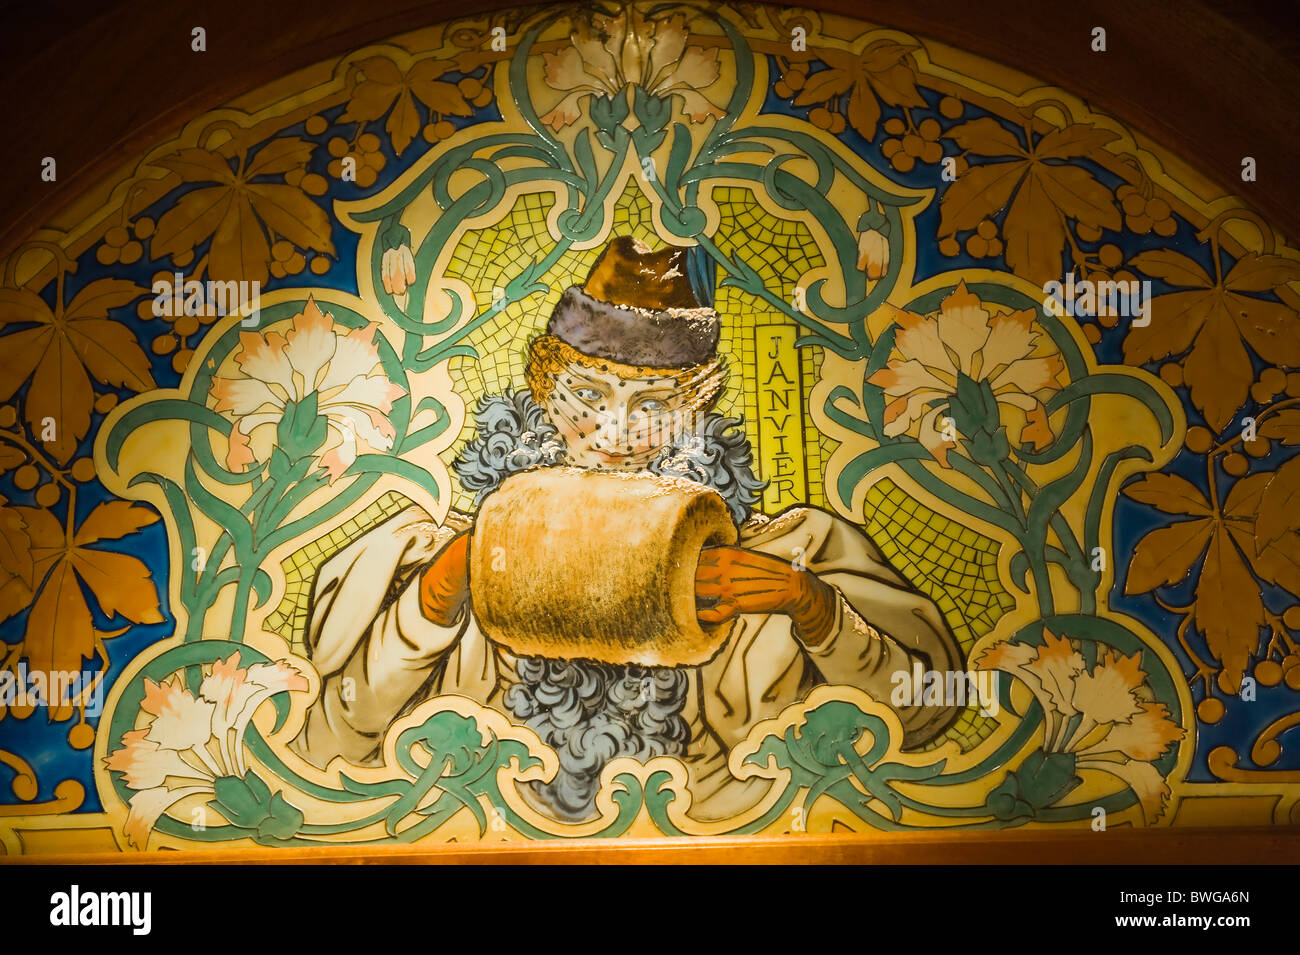 Art Deco Mosaics in a bistrot, Lyon, France - Stock Image